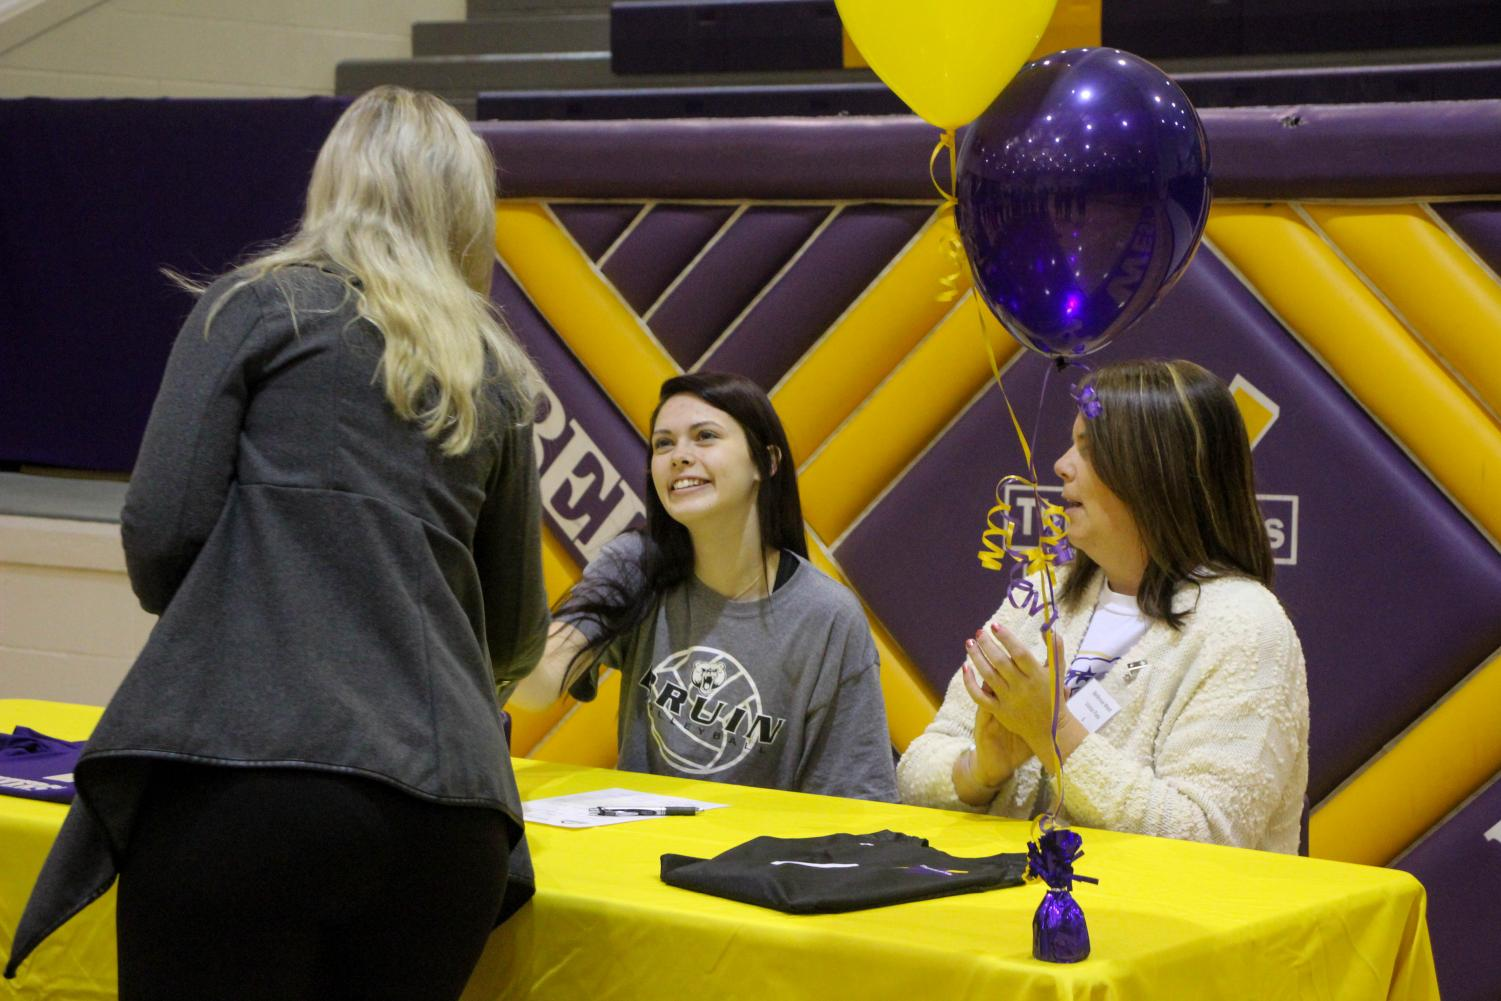 Apel is congratulated on her signing.